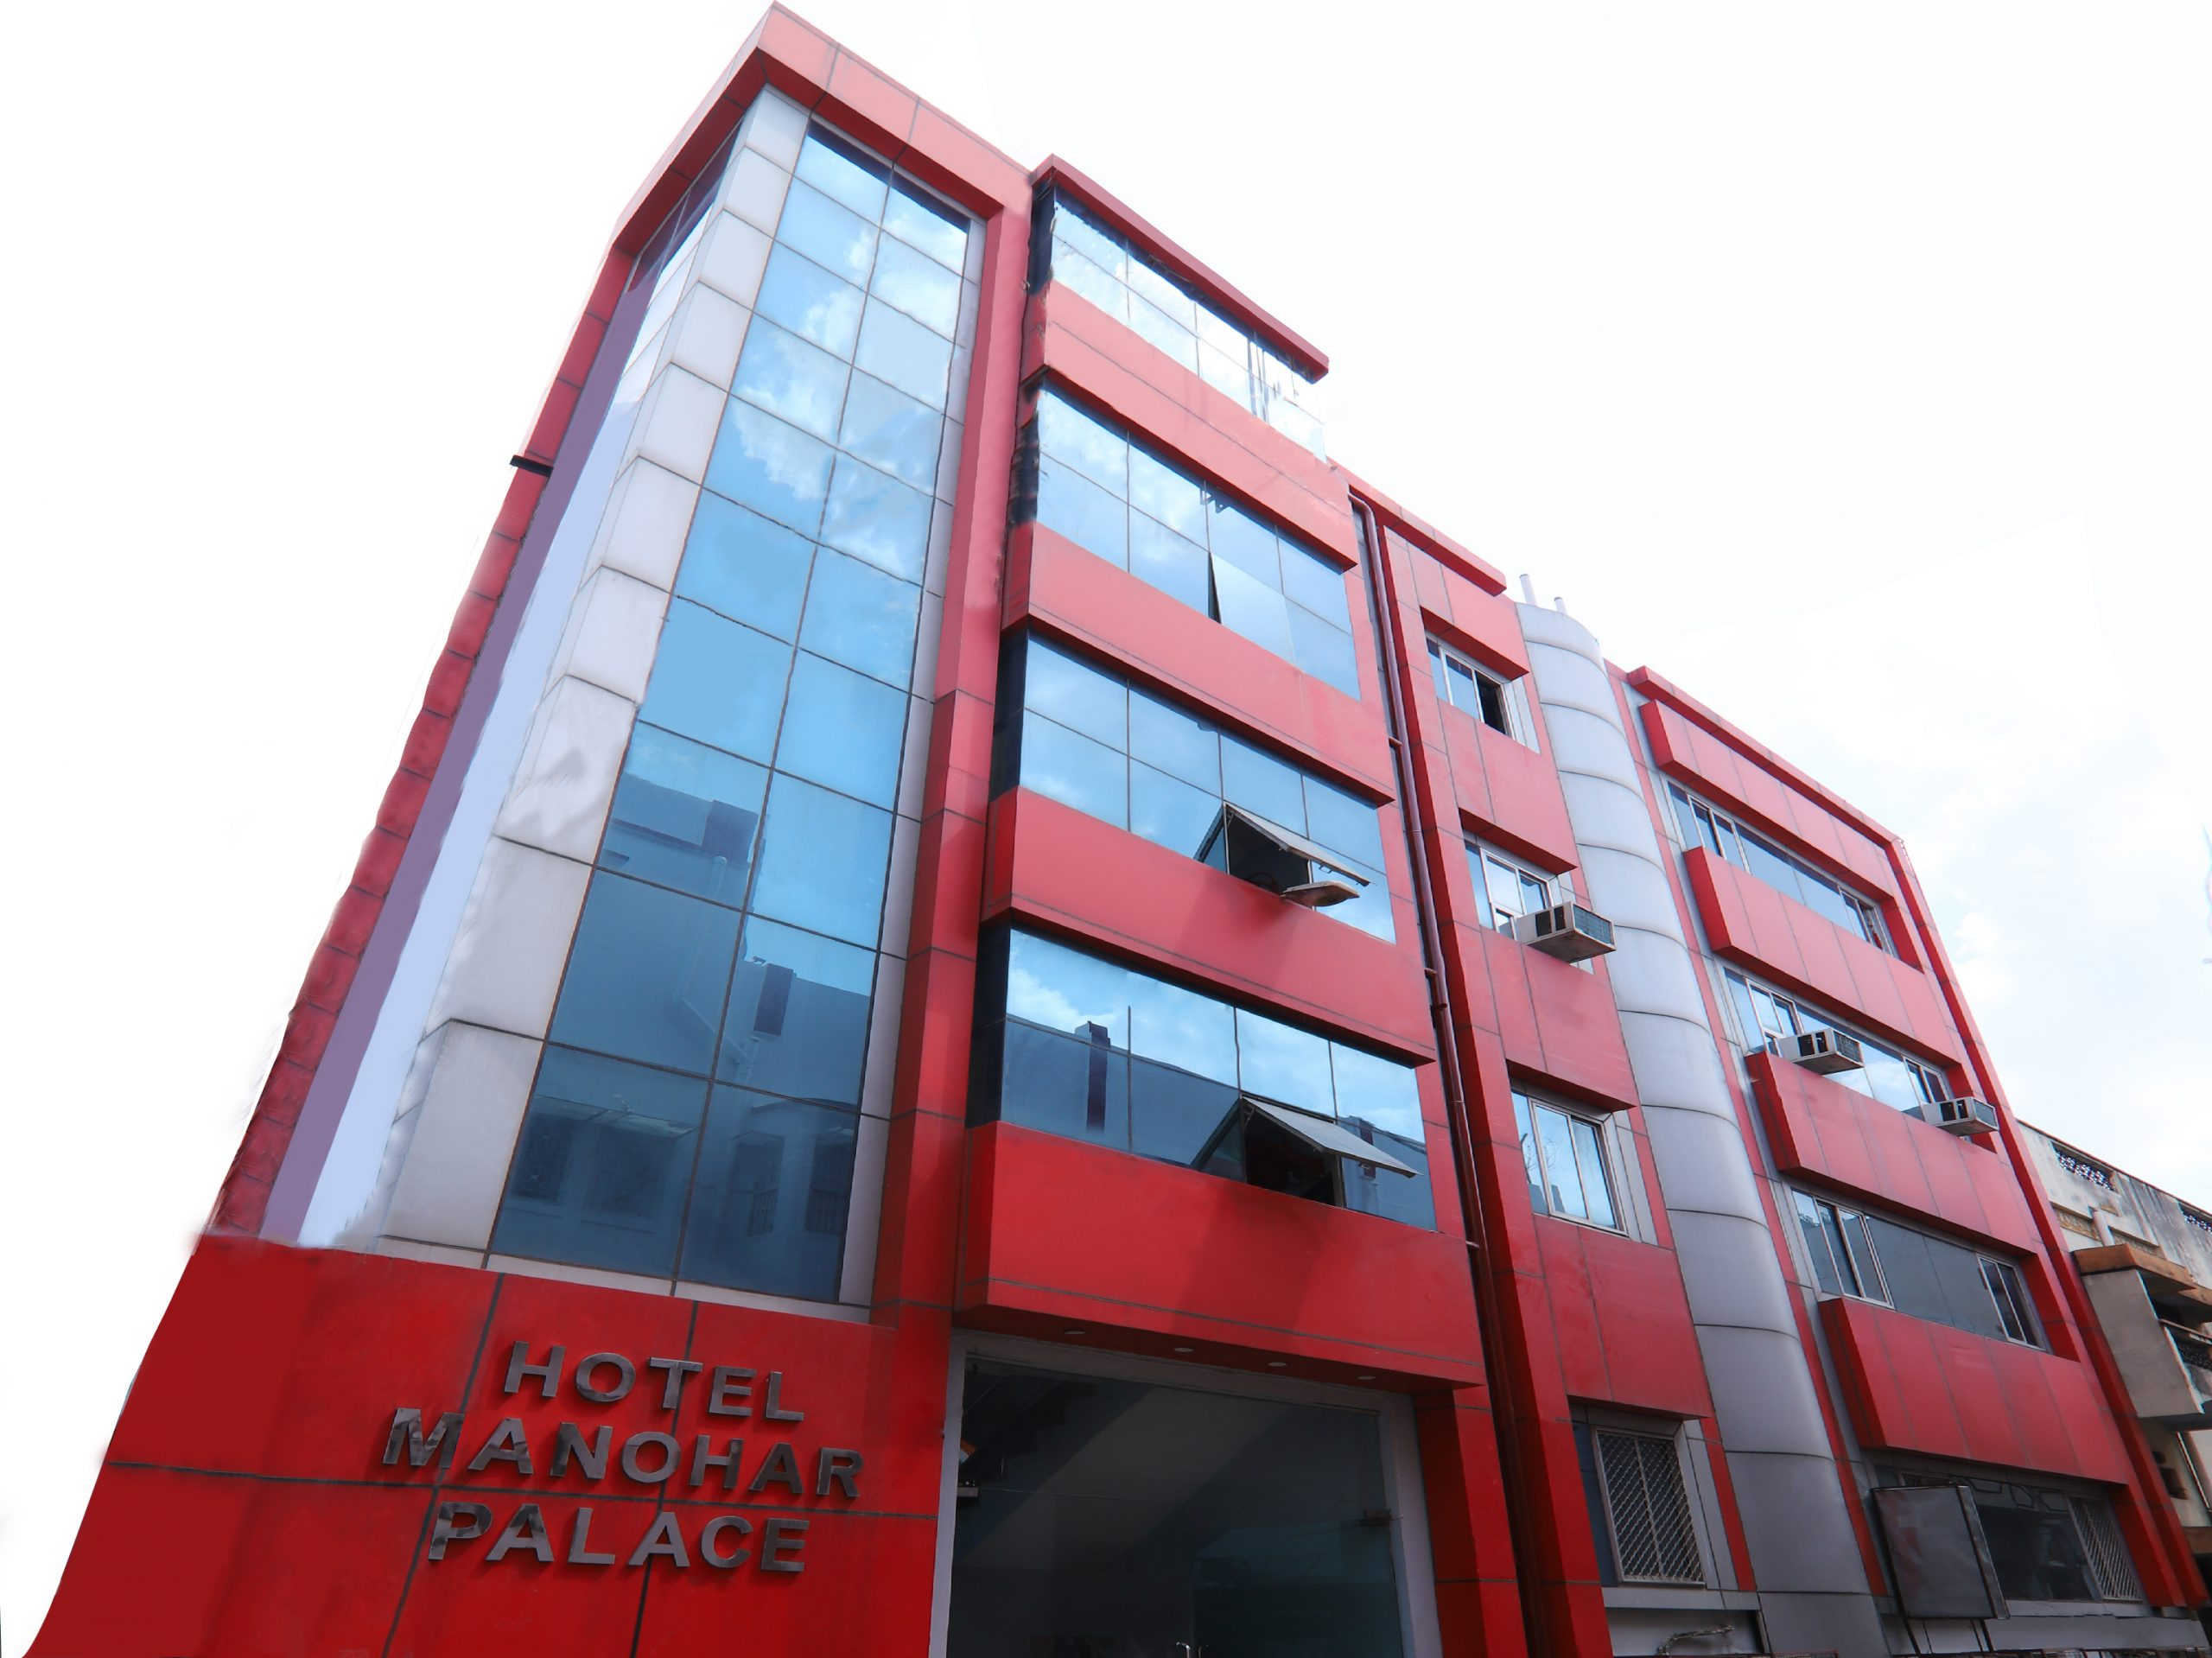 Hotel Manohar Palace Budget Hotel in Lucknow